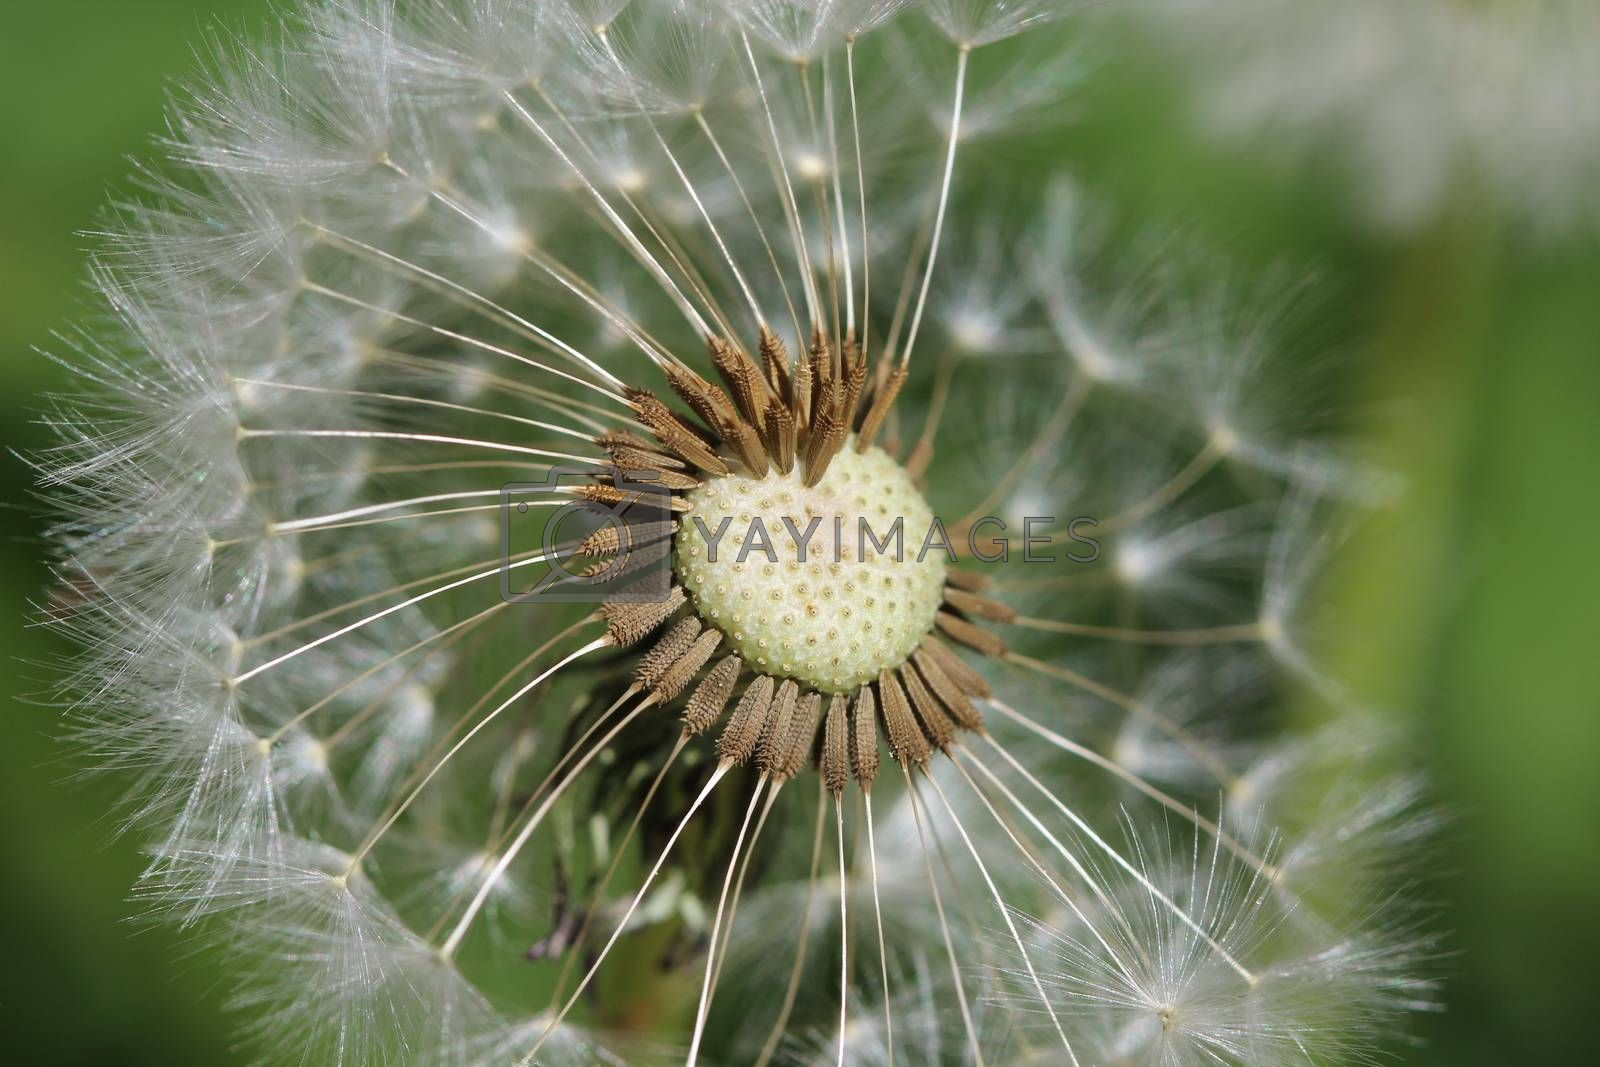 Photo shows details of a white dandelion.